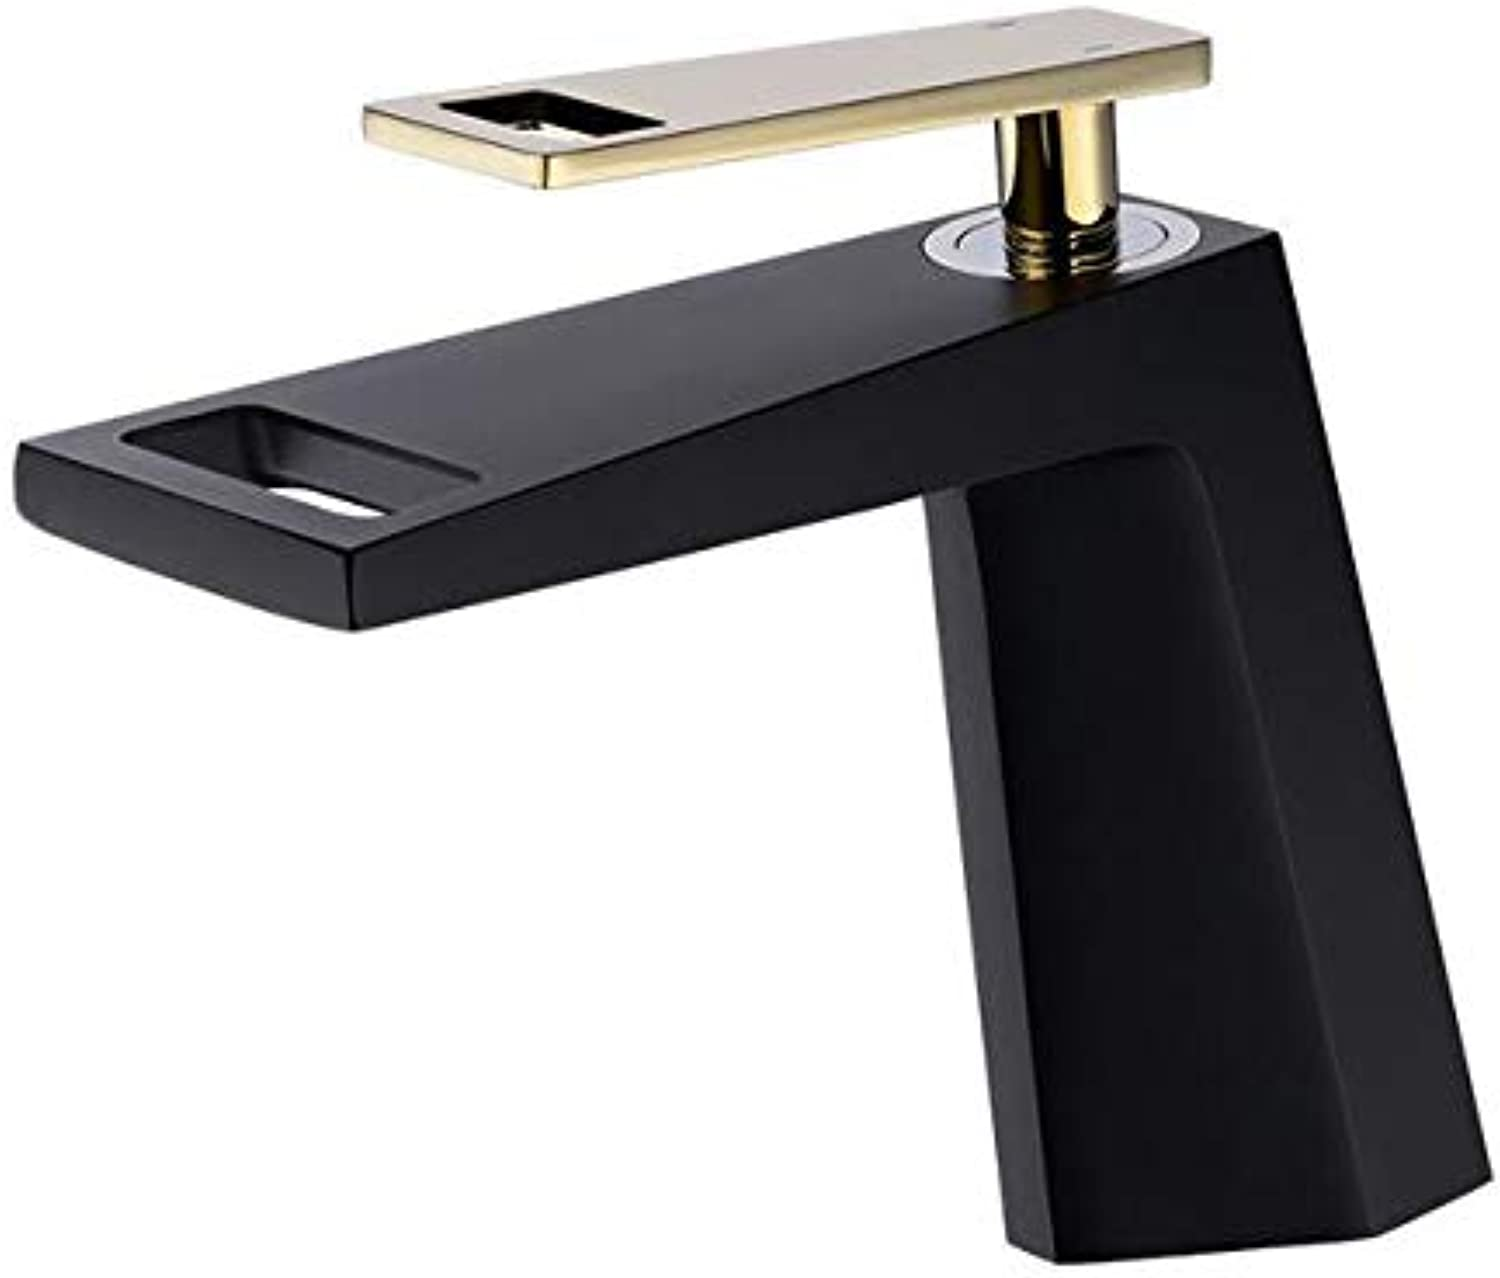 Bathroom Copper hot and Cold Waterfall Single Hole Bathroom Creative wash Basin Basin Faucet